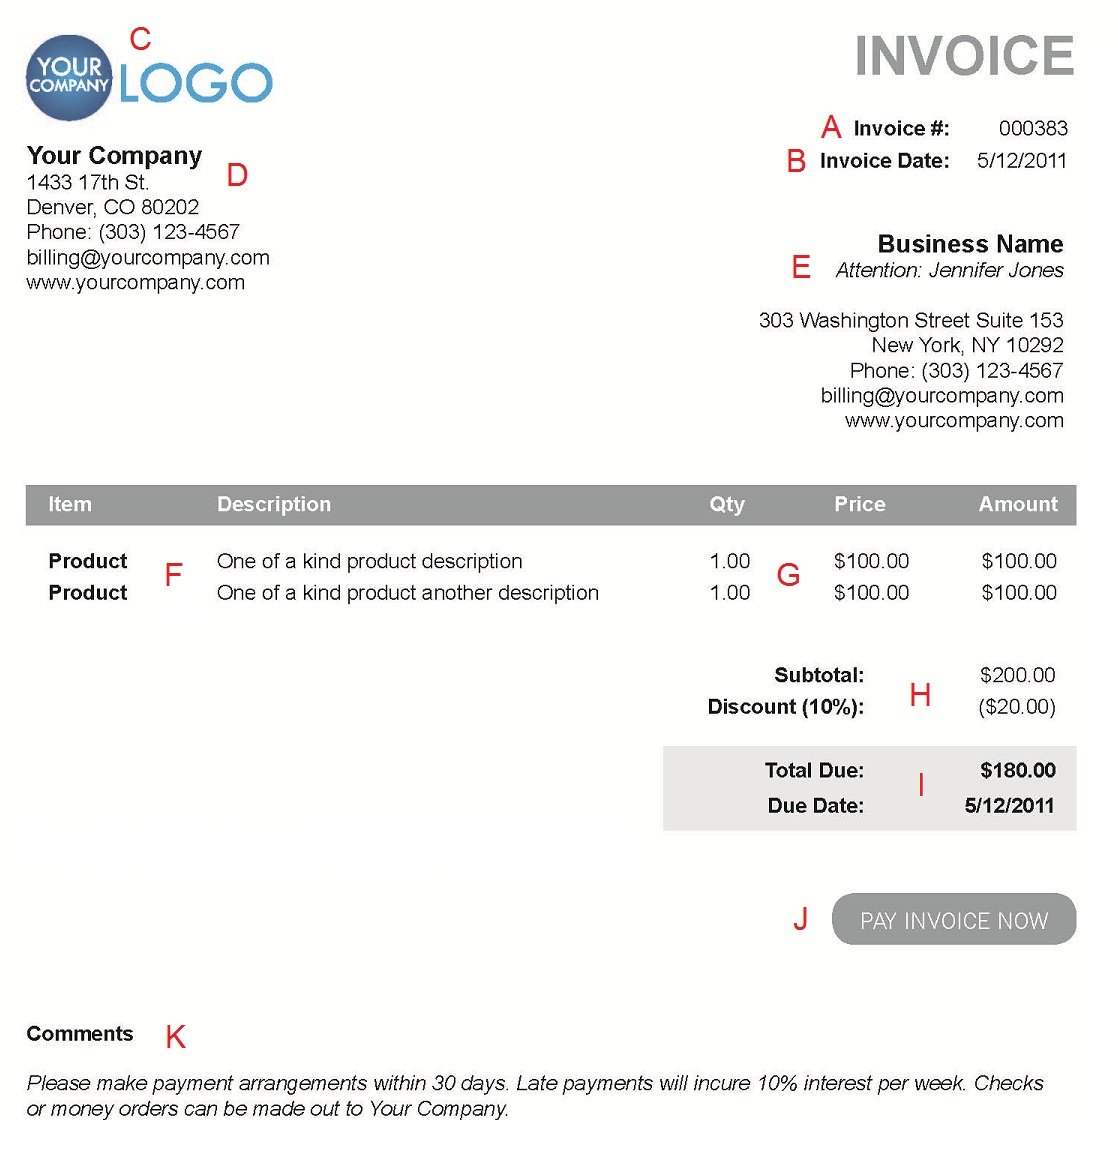 Massenargcus  Mesmerizing The  Different Sections Of An Electronic Payment Invoice With Excellent A  With Captivating Invoice Api Also Invoice Design Template In Addition Invoice Funding Companies And Outstanding Invoice Letter As Well As Invoice Terms And Conditions Template Additionally Make A Free Invoice From Paysimplecom With Massenargcus  Excellent The  Different Sections Of An Electronic Payment Invoice With Captivating A  And Mesmerizing Invoice Api Also Invoice Design Template In Addition Invoice Funding Companies From Paysimplecom